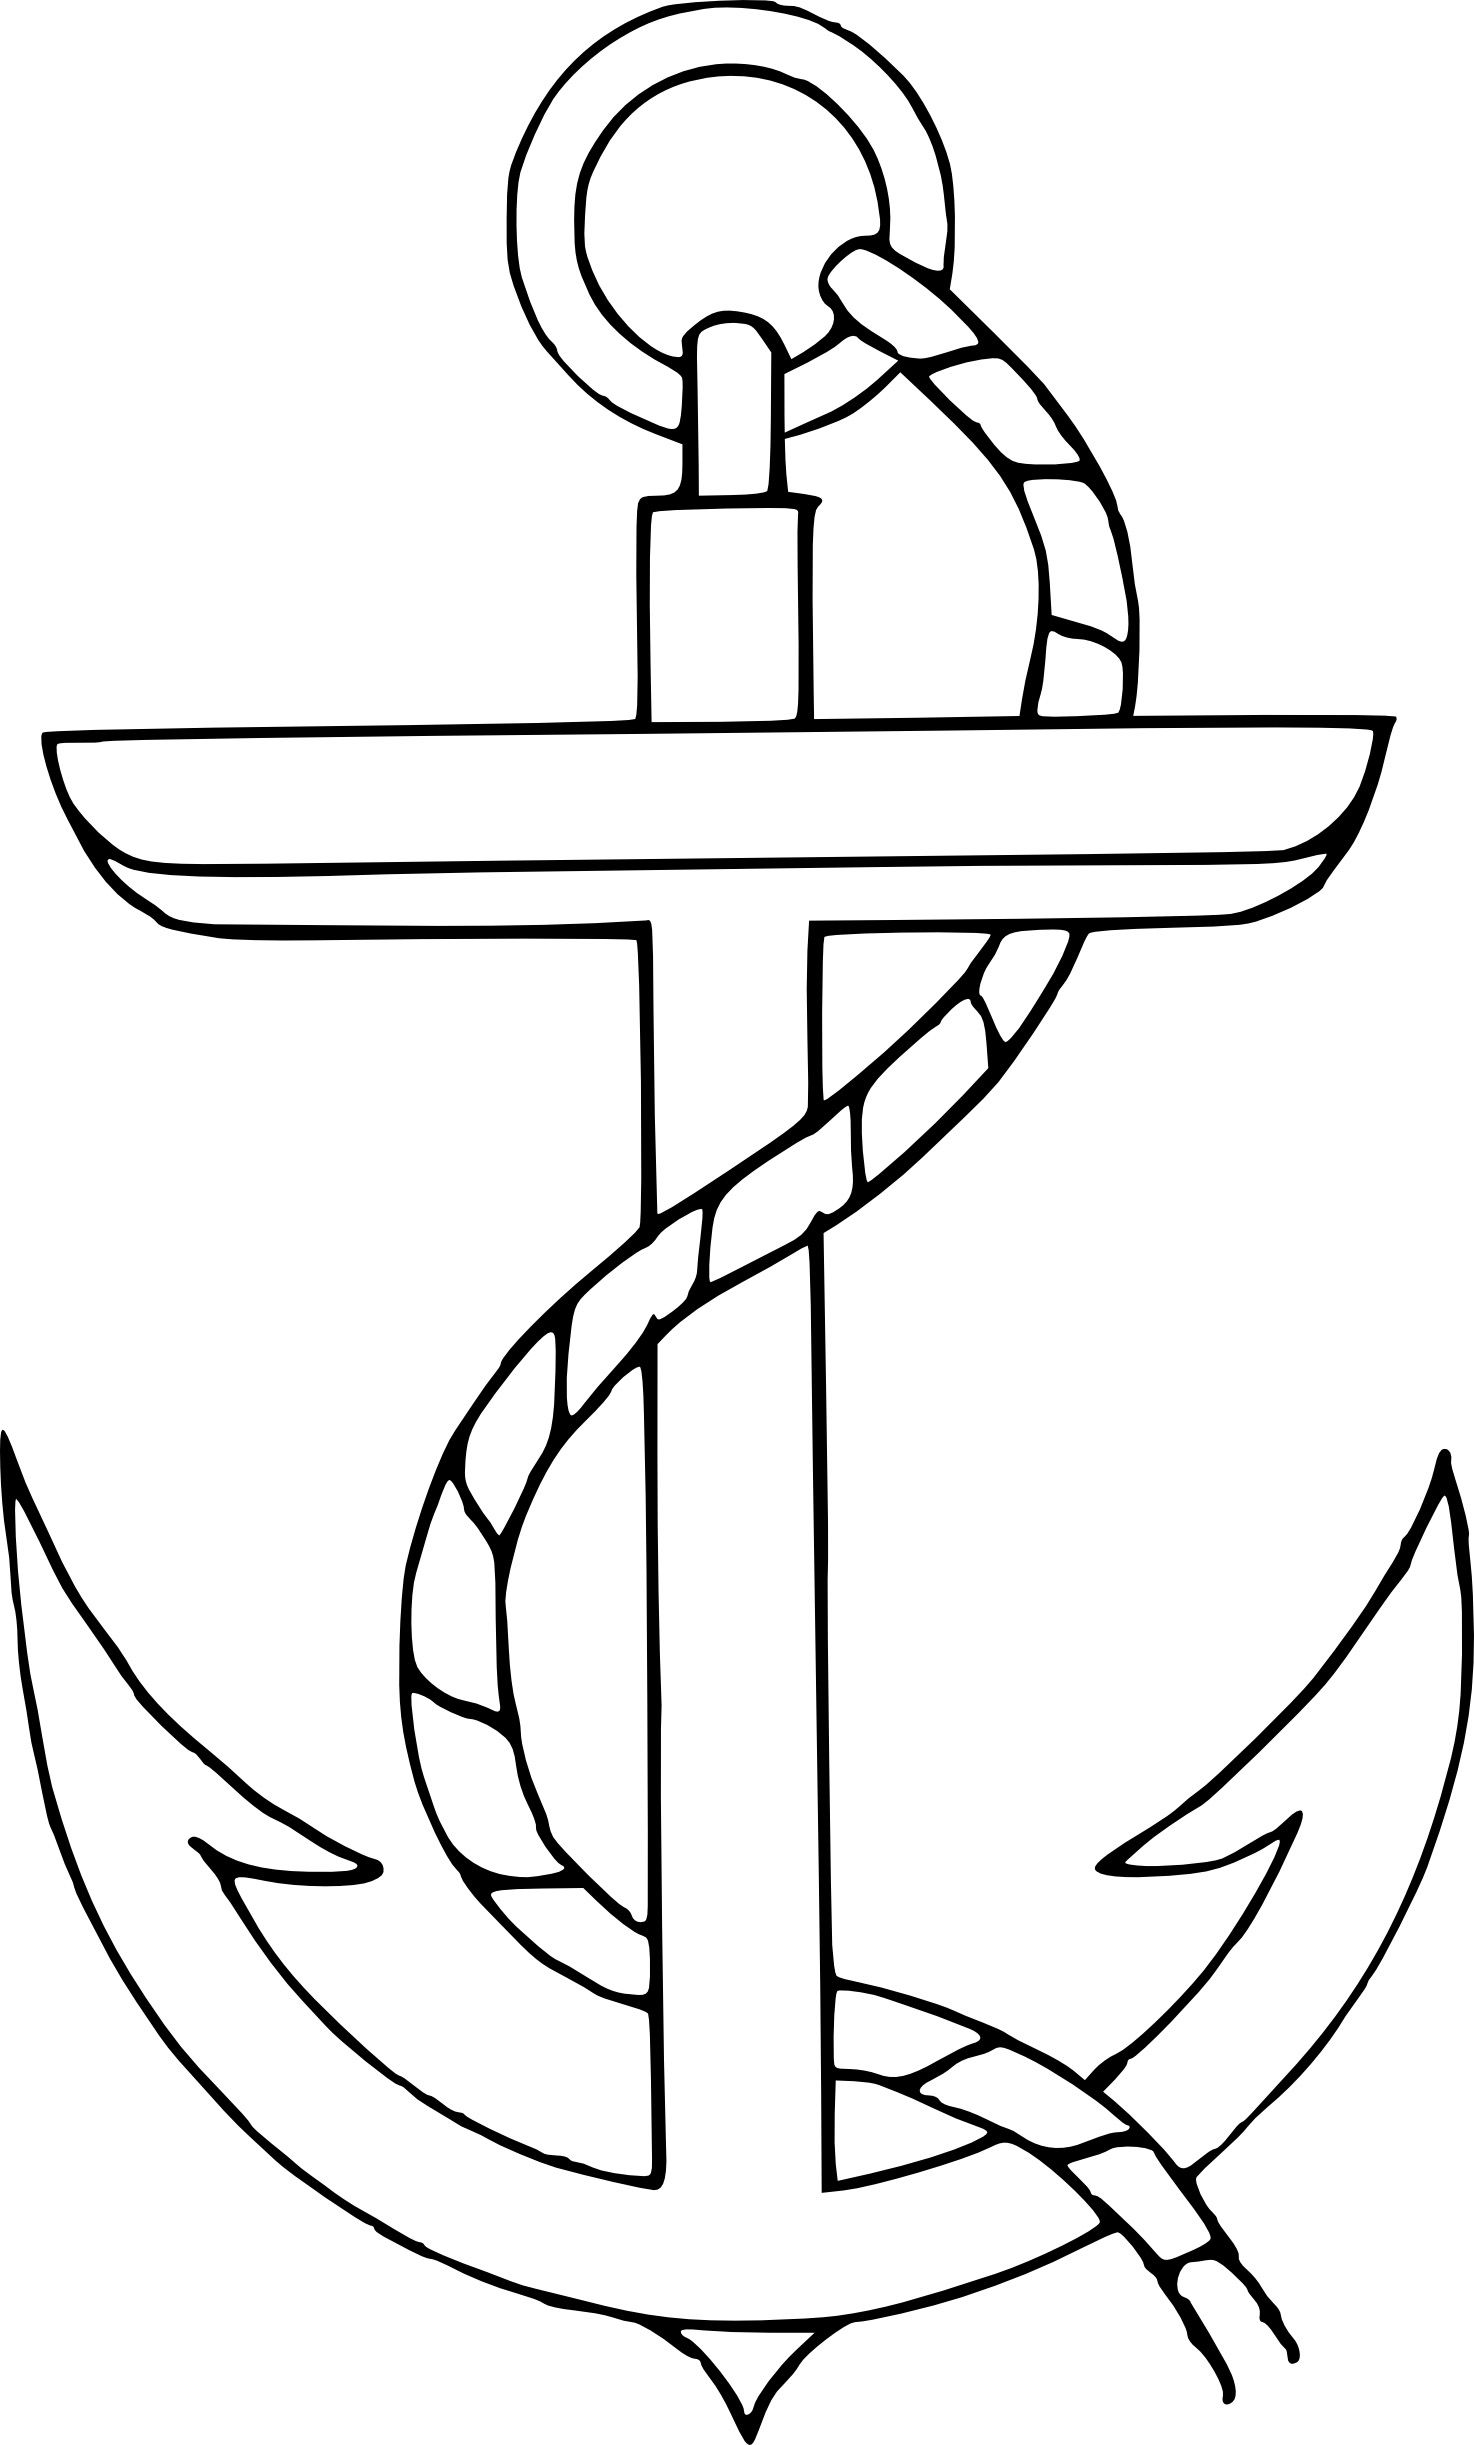 Anchor clipart colored. With heart clip art